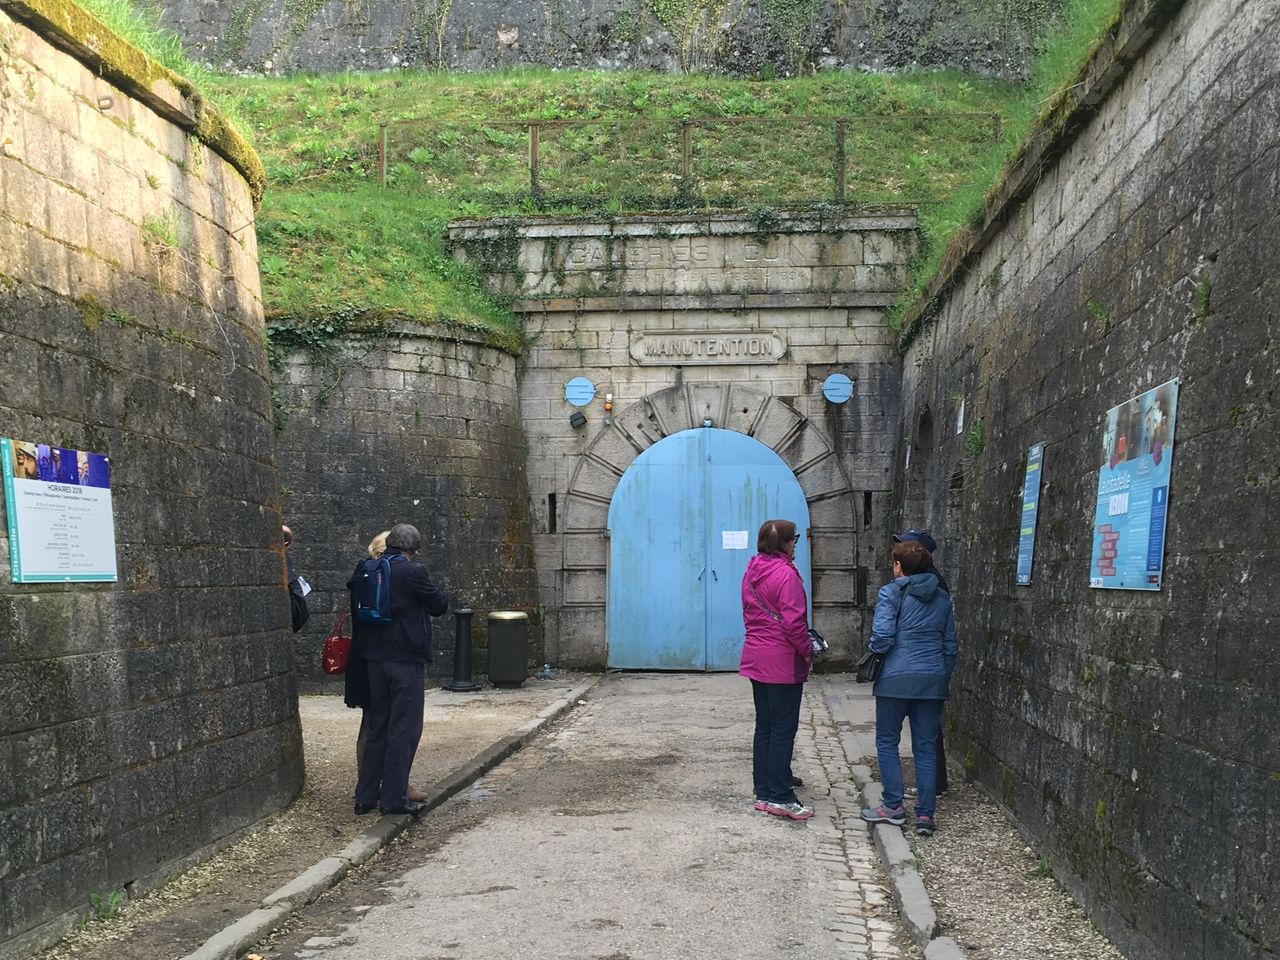 The entrance to the Citadel of Verdun, the subterranean headquarters of the French defense of the city in 1916.